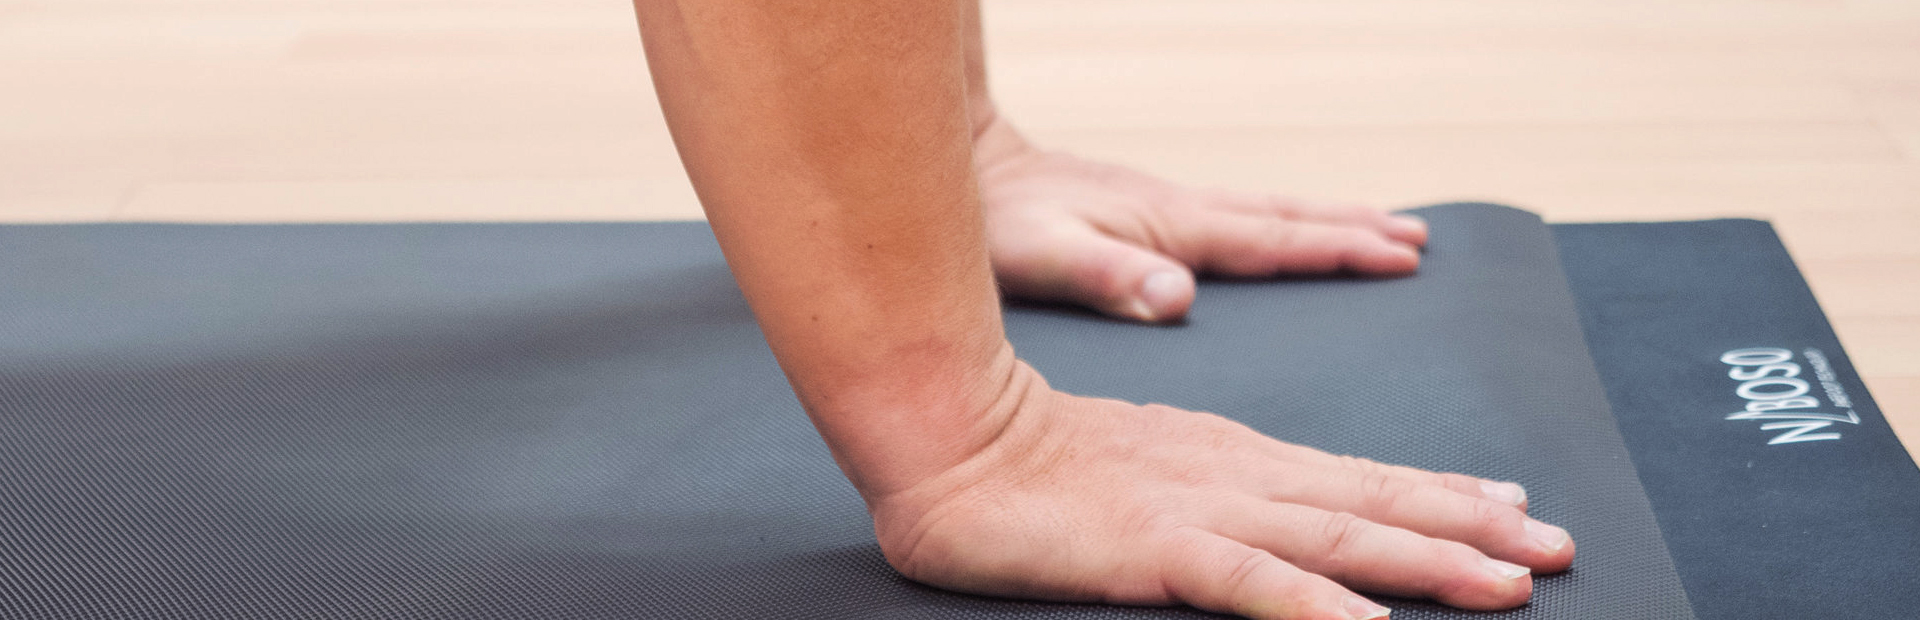 Naboso Training Mat_Hands.jpg